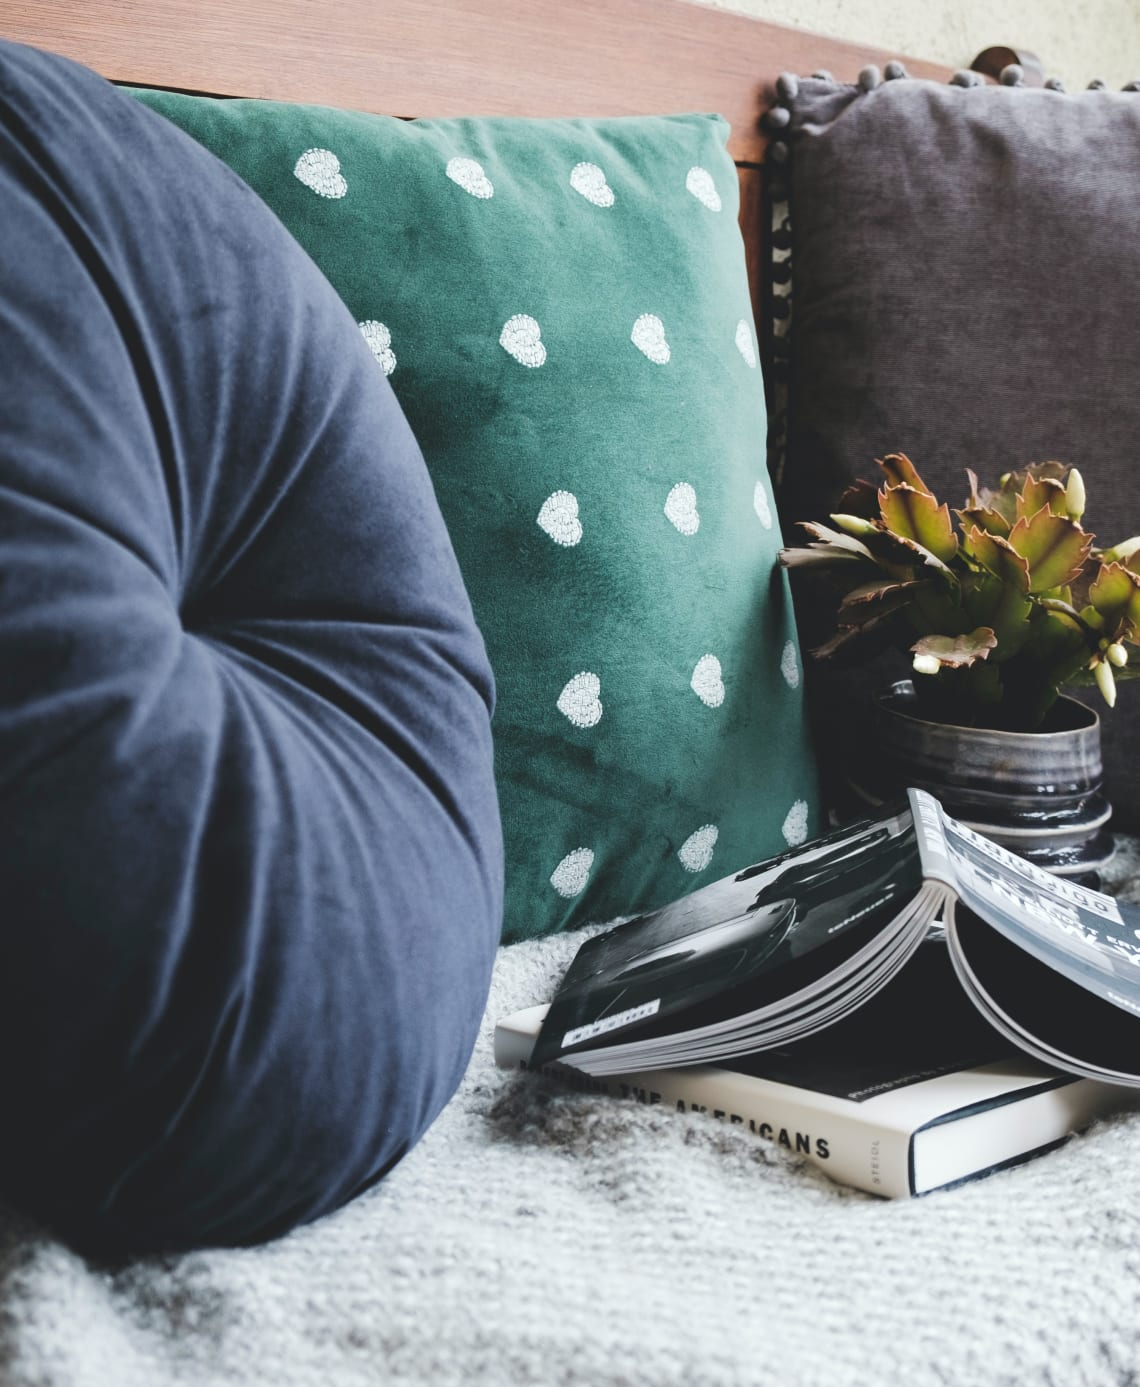 Book with plant on couch wtih pillows